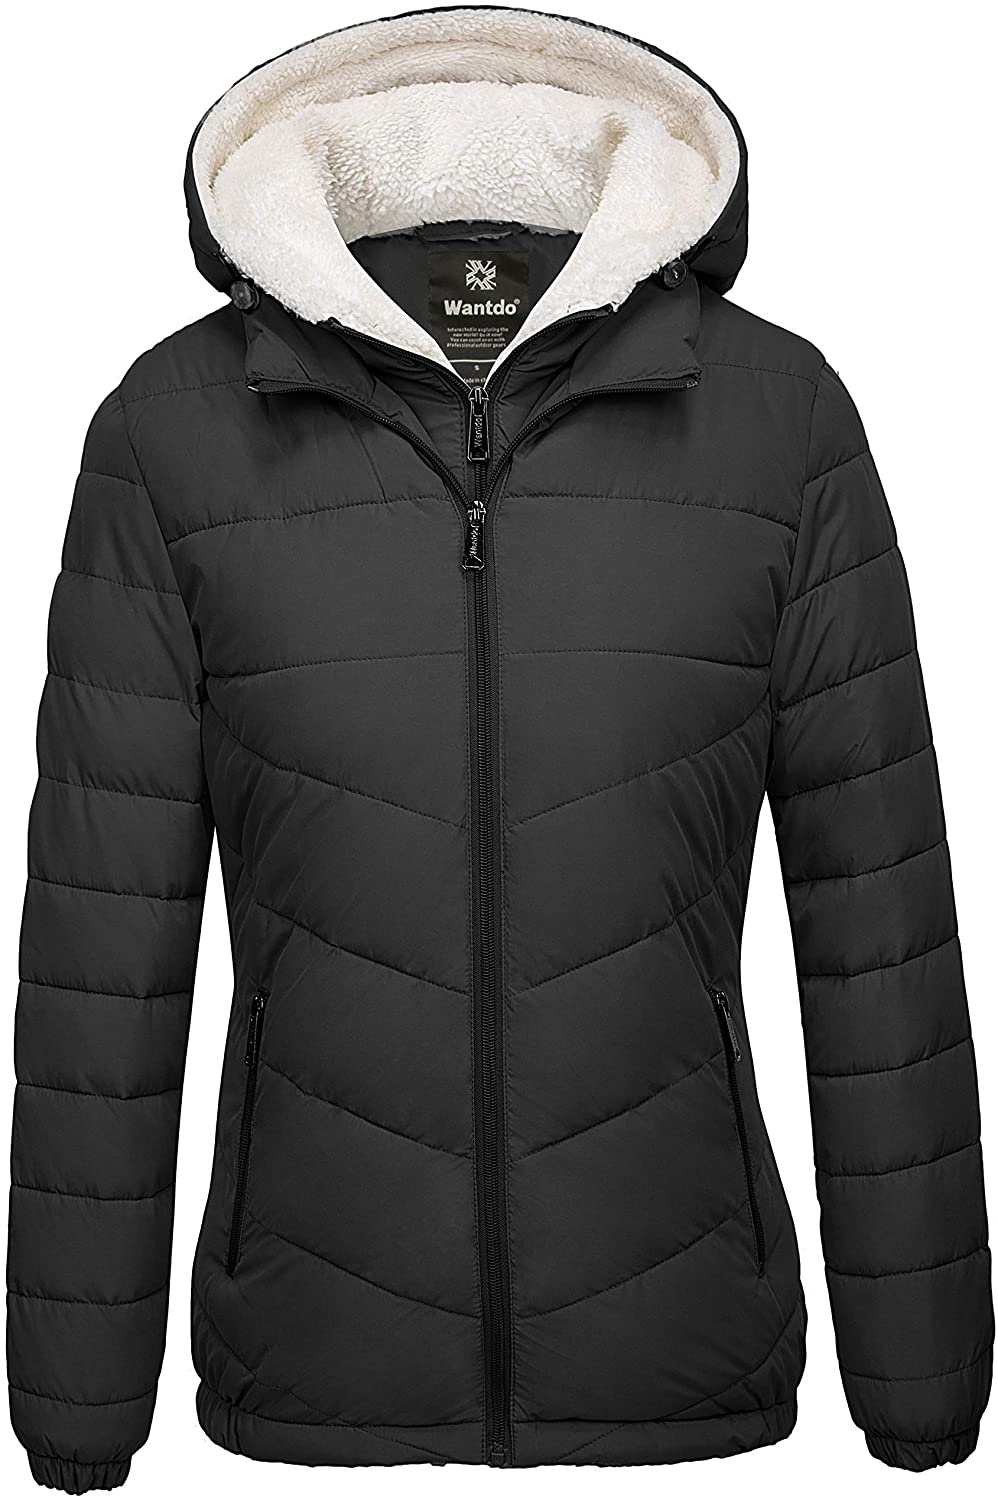 Wantdo Women's Quilted Winter Coats Hooded Warm Puffer Jacket with Fleece Hood